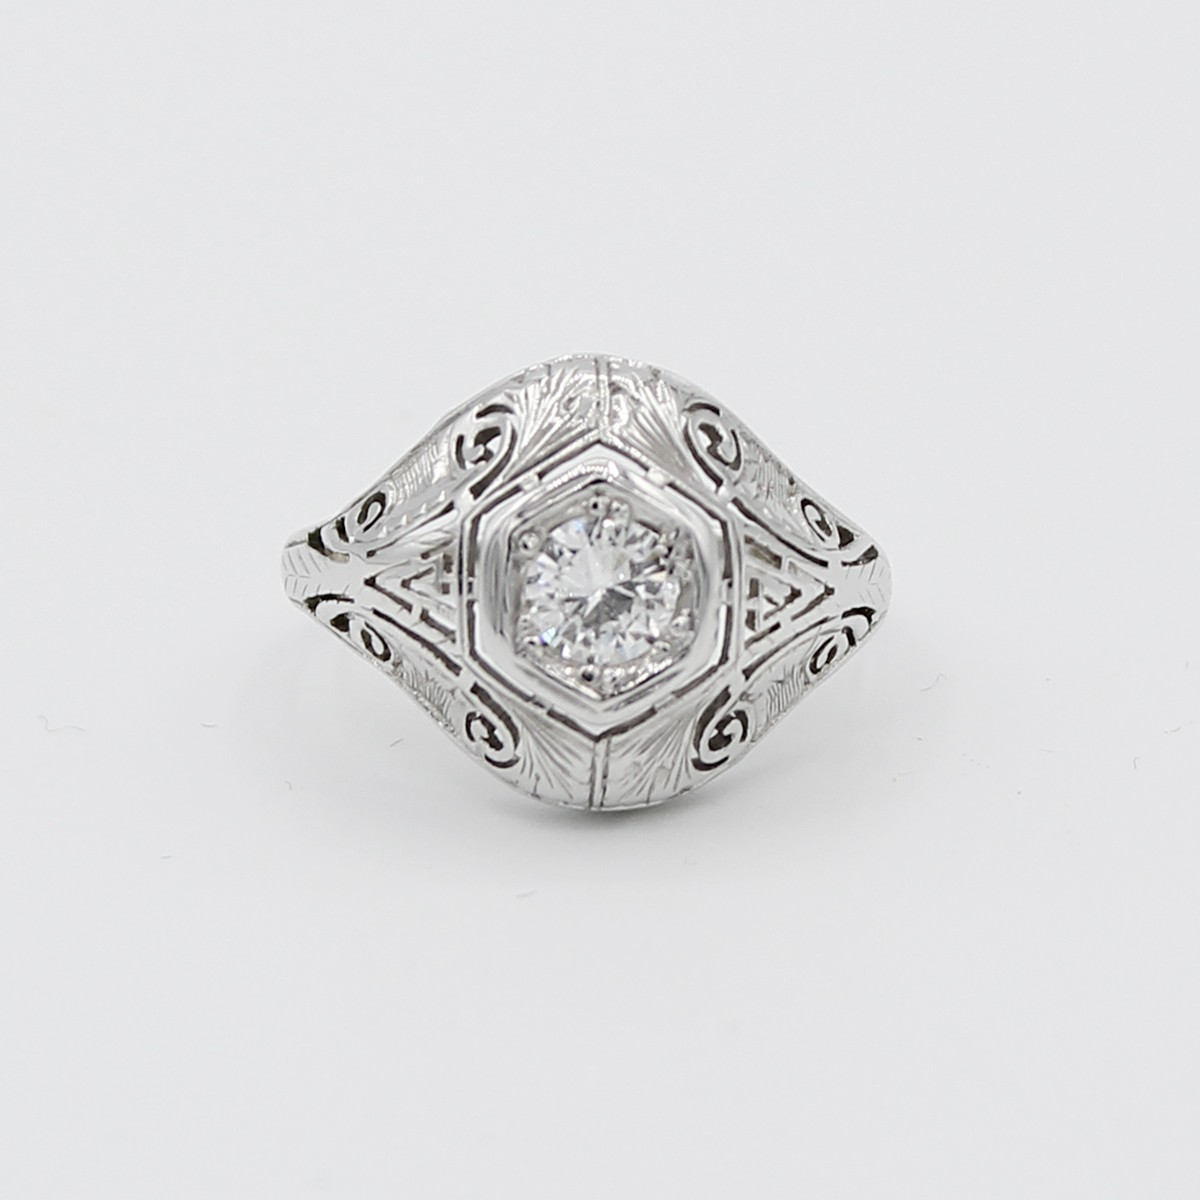 Vintage 18k white gold filigree antique diamond ring